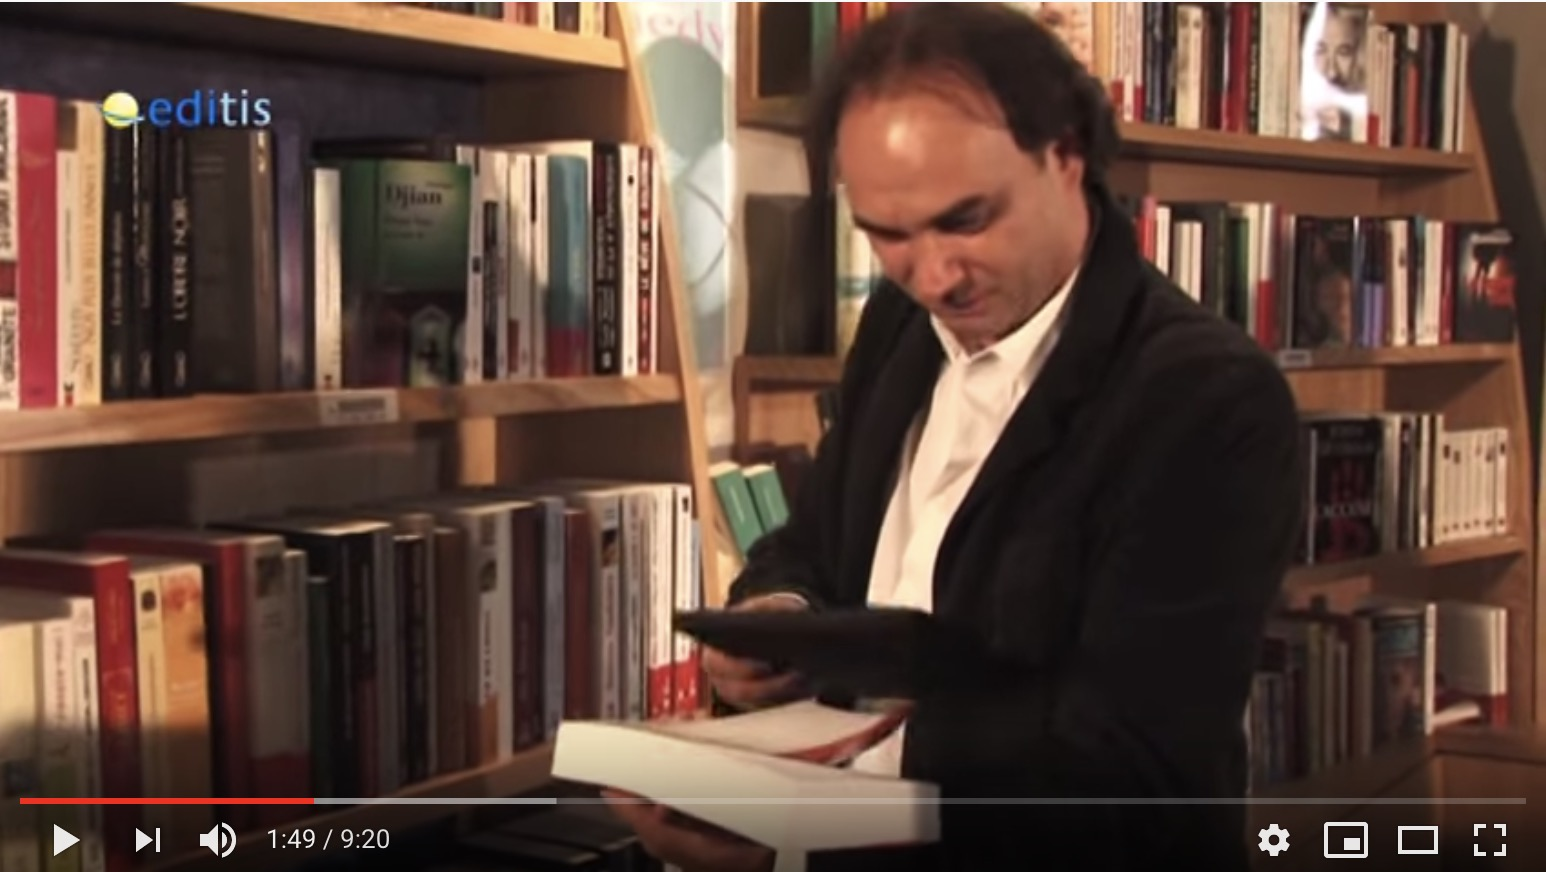 Screencapture from an Editis video showing a man with a book in a bookstore  scanning with his e-reader.